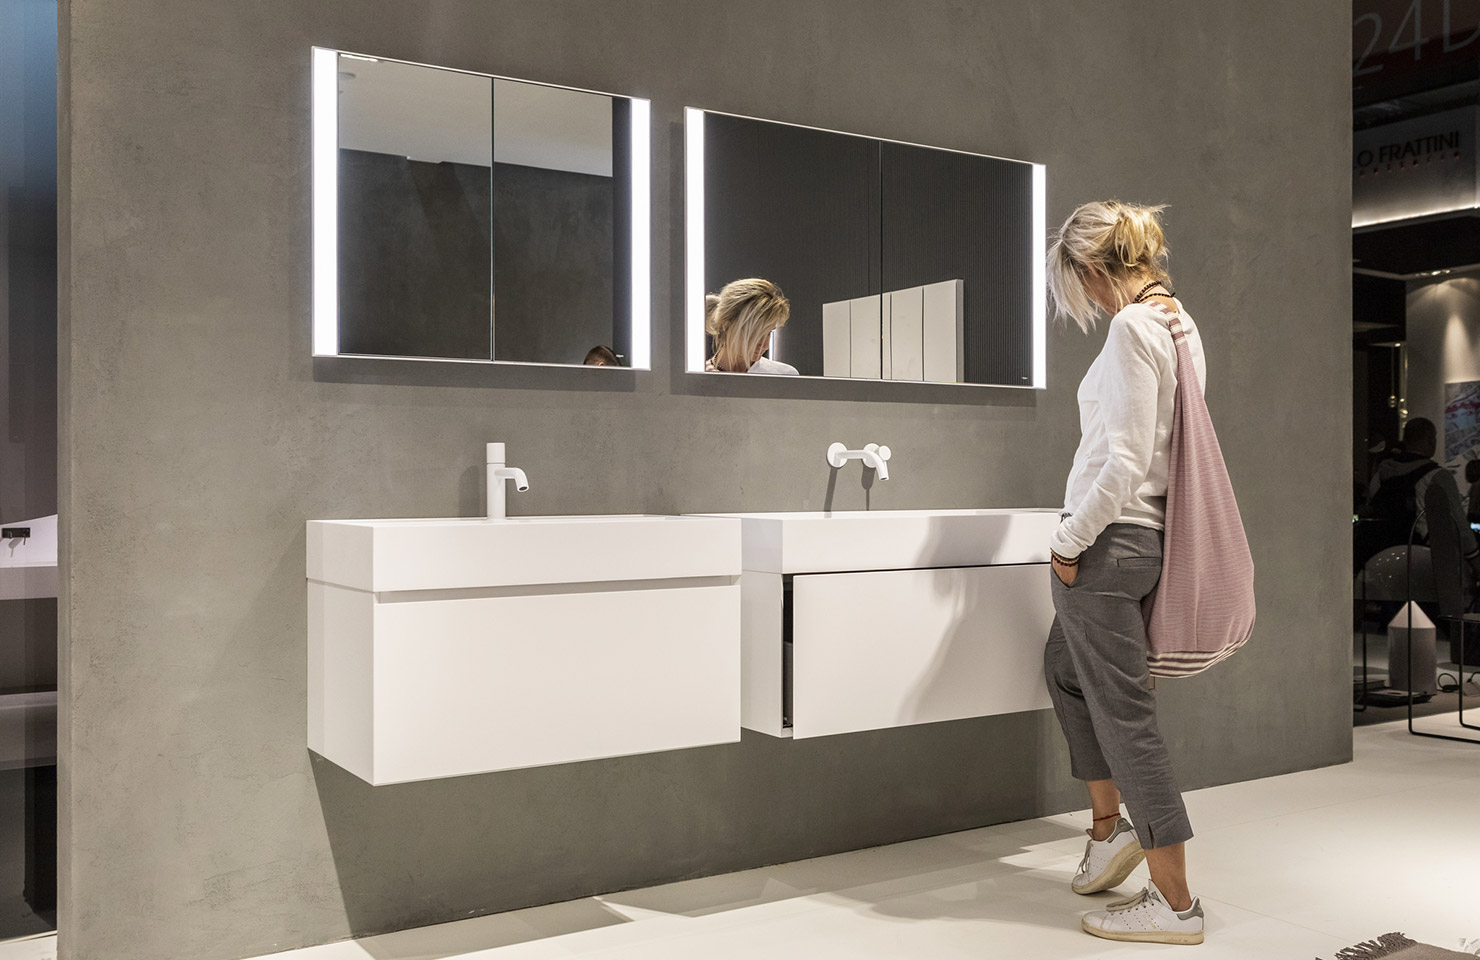 international bathroom exhibition 2020 Elevating Bathroom Design –  International Bathroom Exhibition 2020 MV Eurobagno